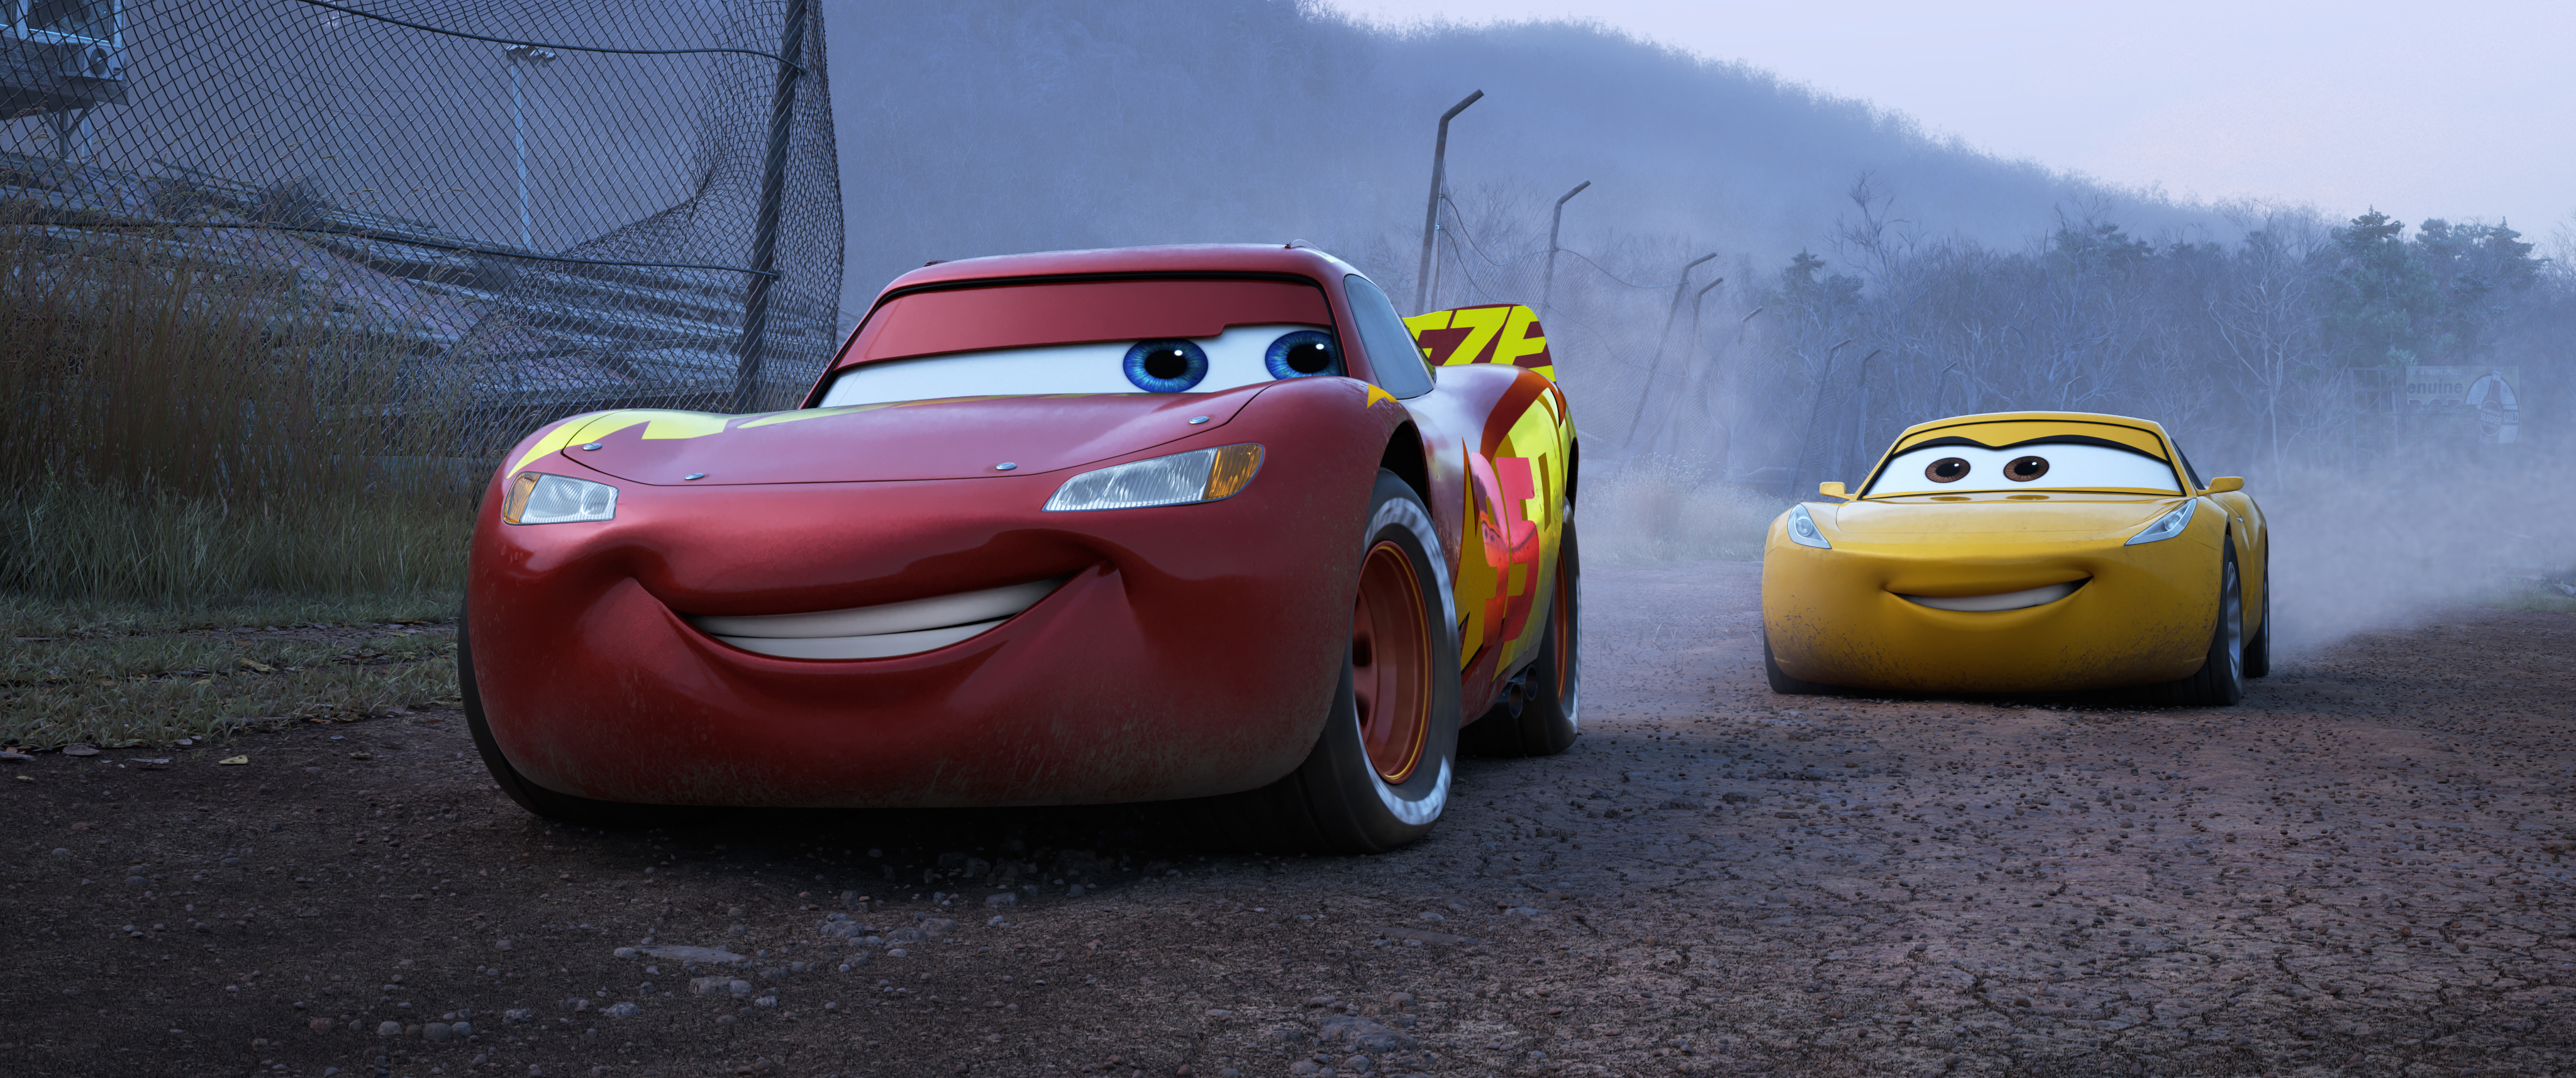 Cars 3 Footage Reaction Pixar Screened Around 50 Minutes Of The